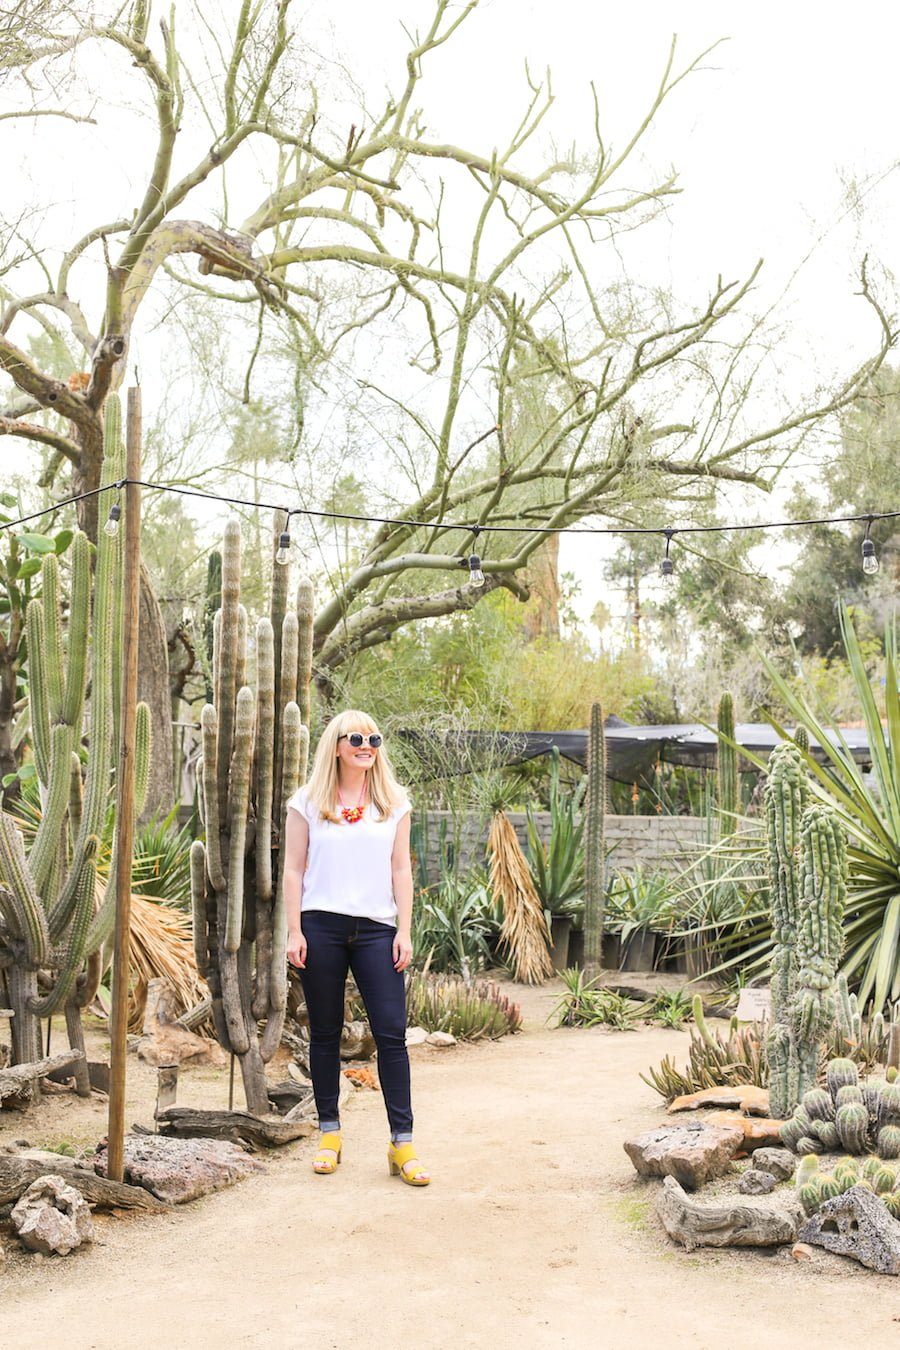 Alt Summit Instagram Tour of Palm Springs - Moorten Botanical Garden // Salty Canary